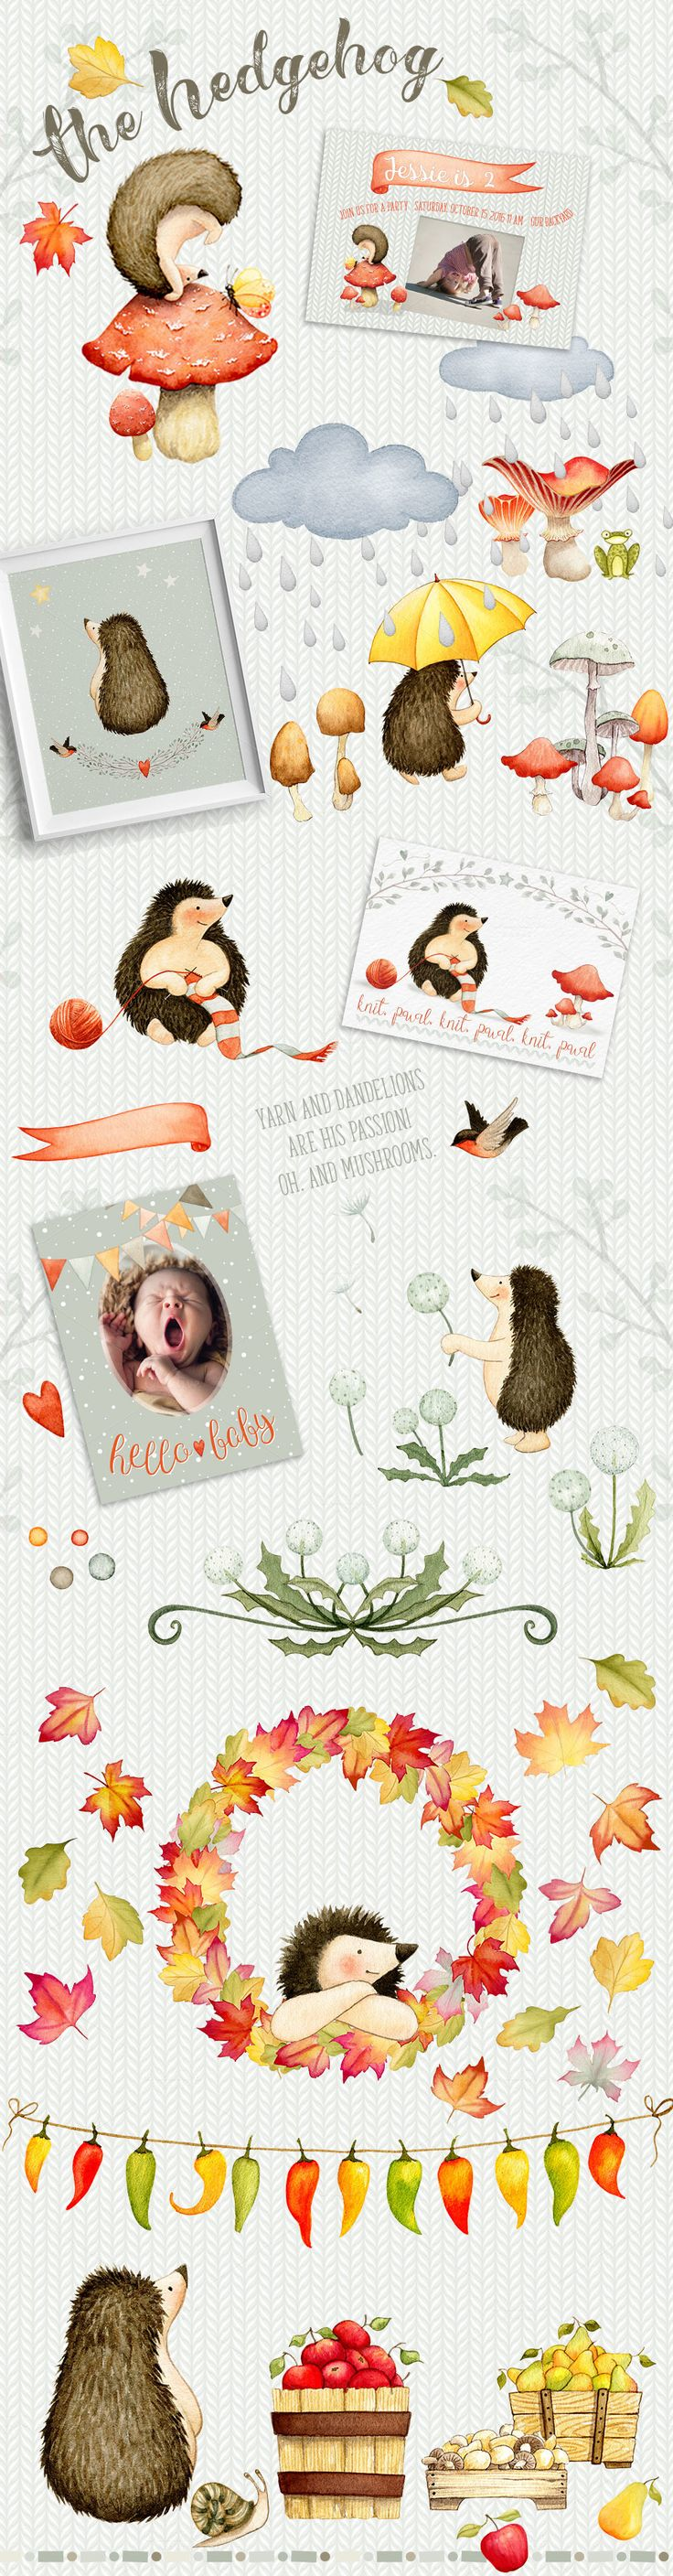 Autumn Charm Watercolor collection by Watercolor Nomads on @creativemarket